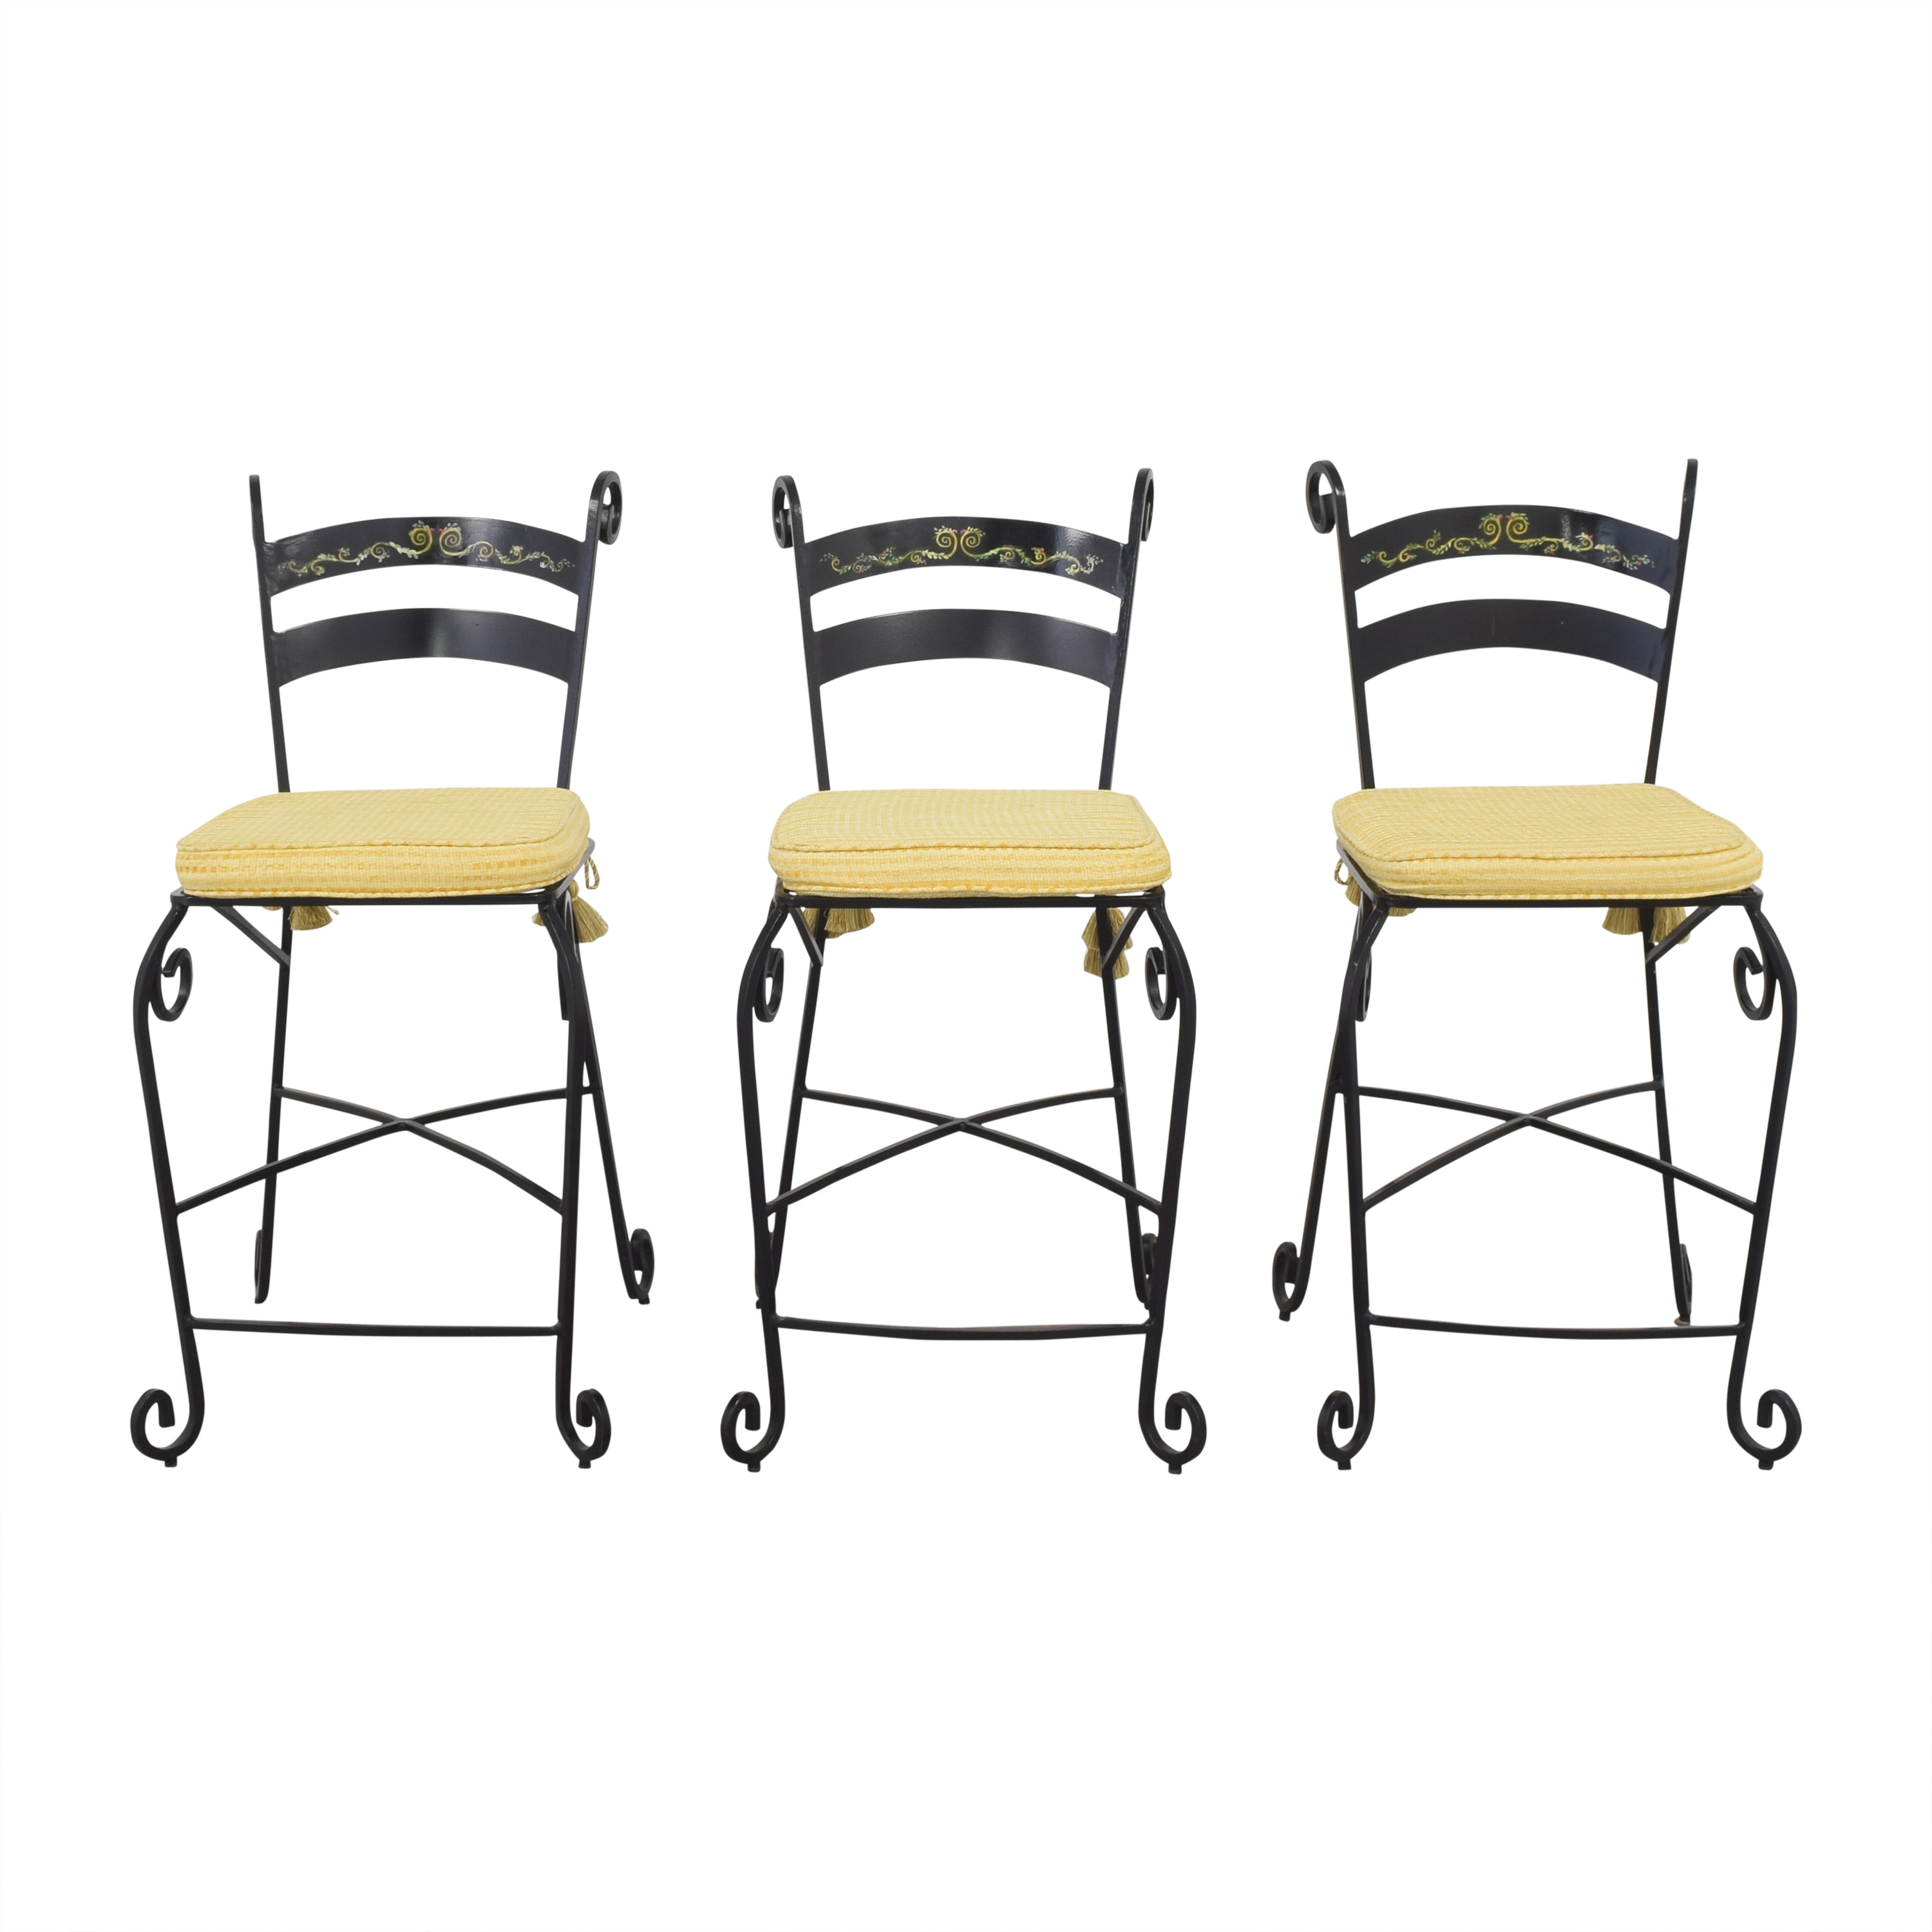 Wrought Frame Bar Stools price